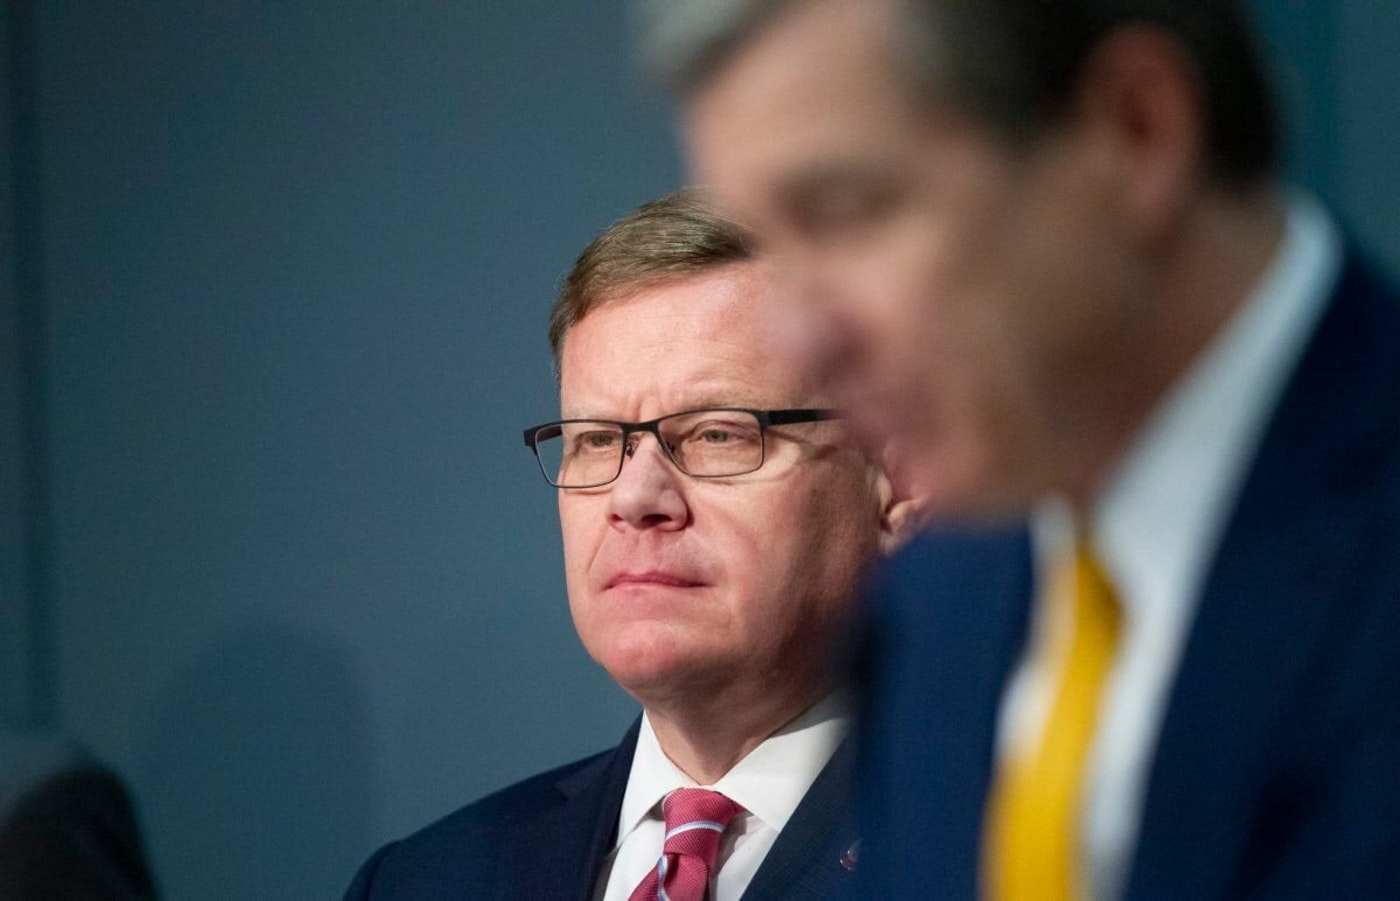 House Speaker Tim Moore in a May 4 press conference with Gov. Roy Cooper. Despite scant evidence of voter fraud, Moore has spearheaded the push for voter ID in North Carolina.